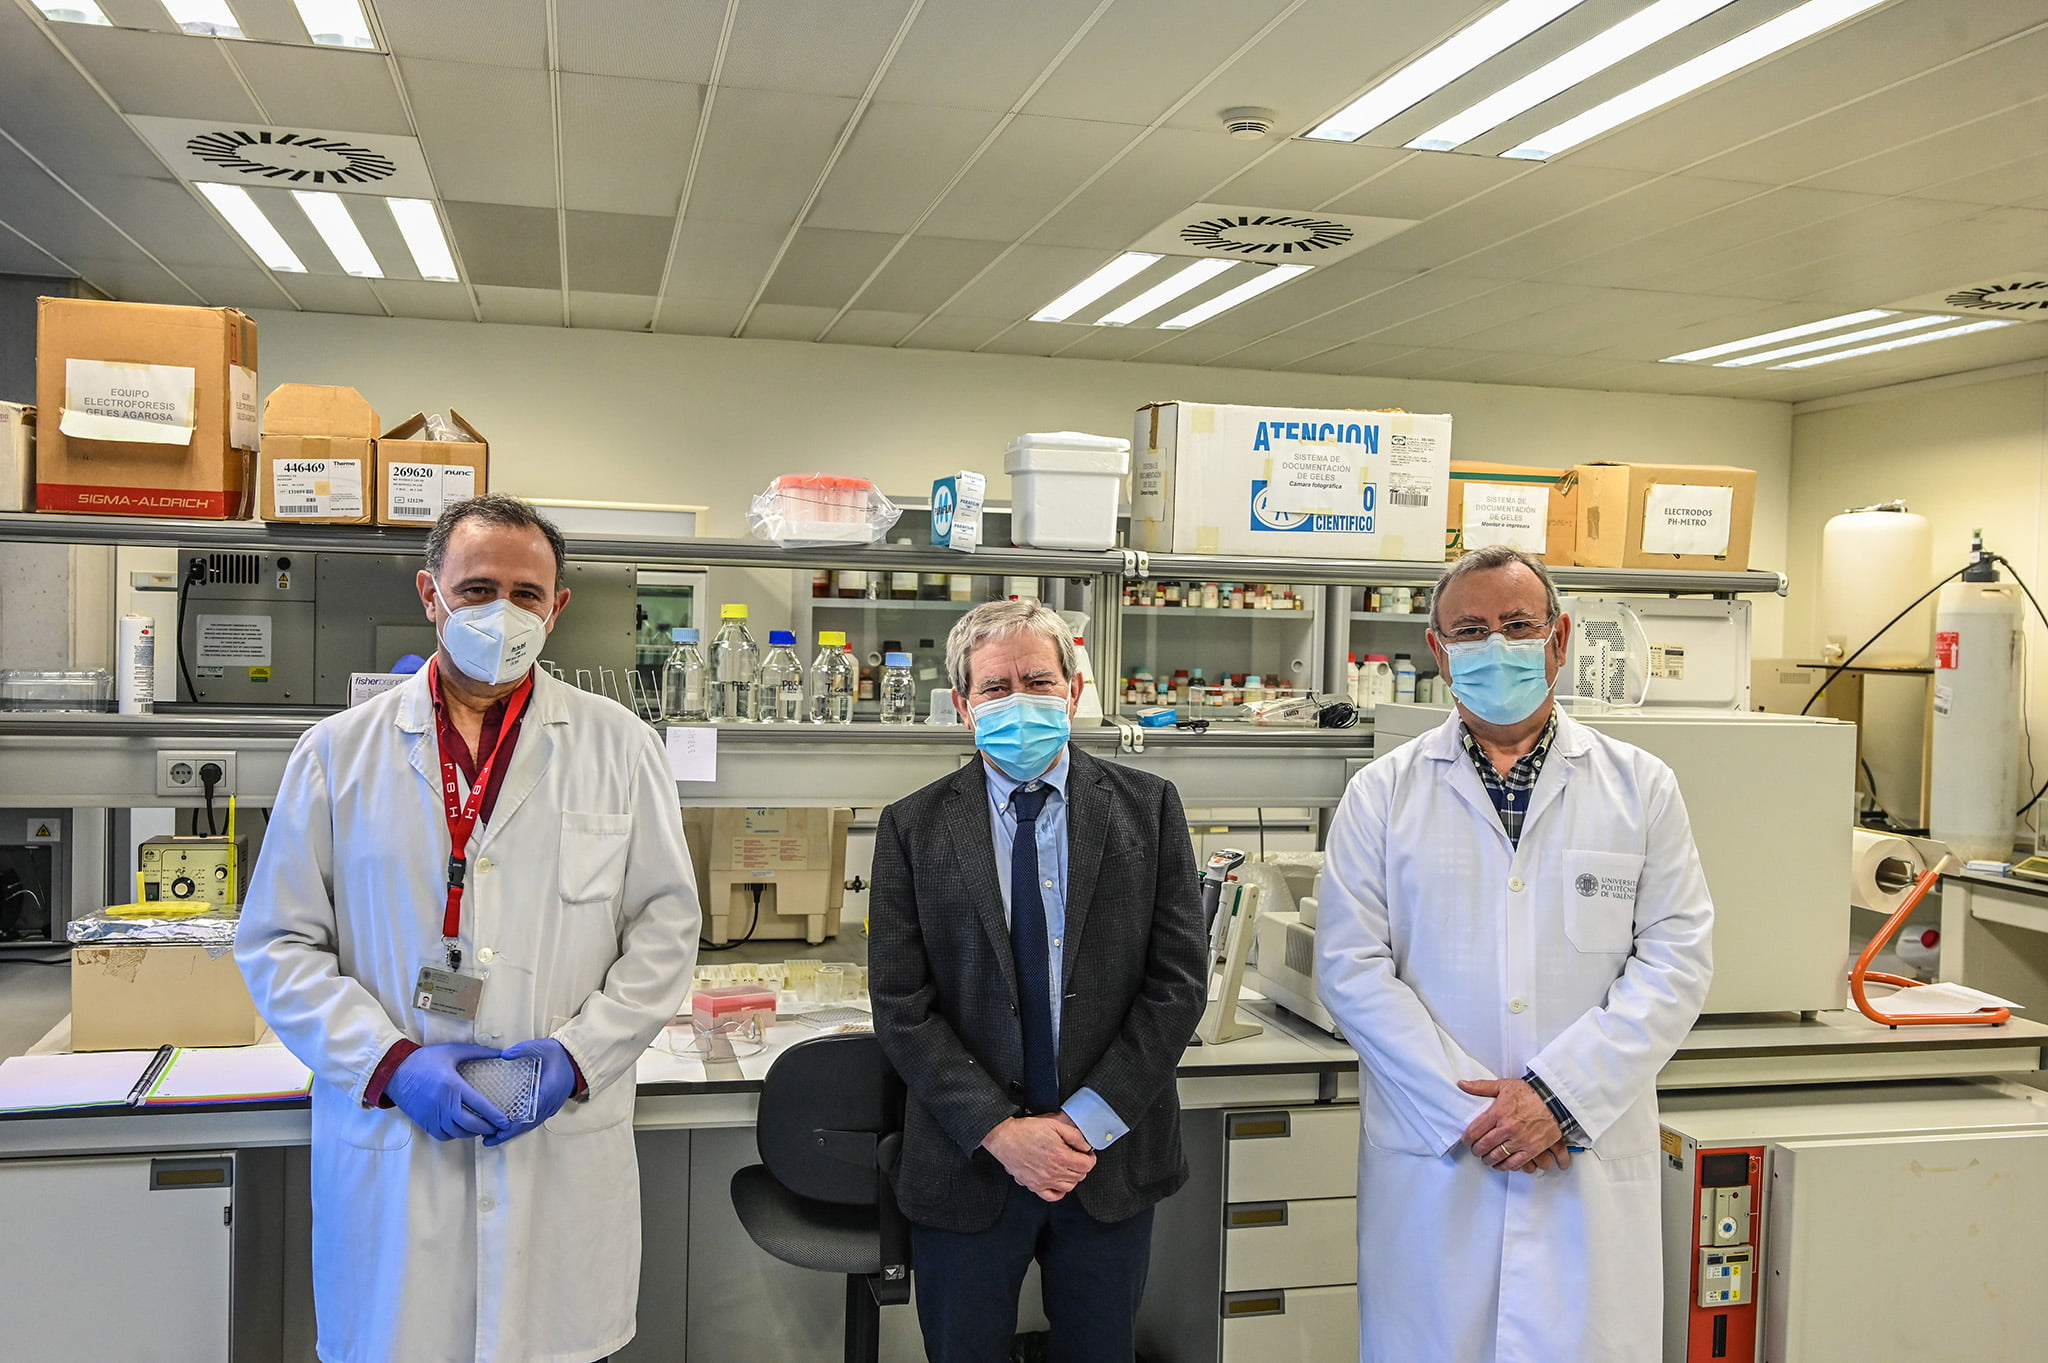 Research staff of the new COVID test